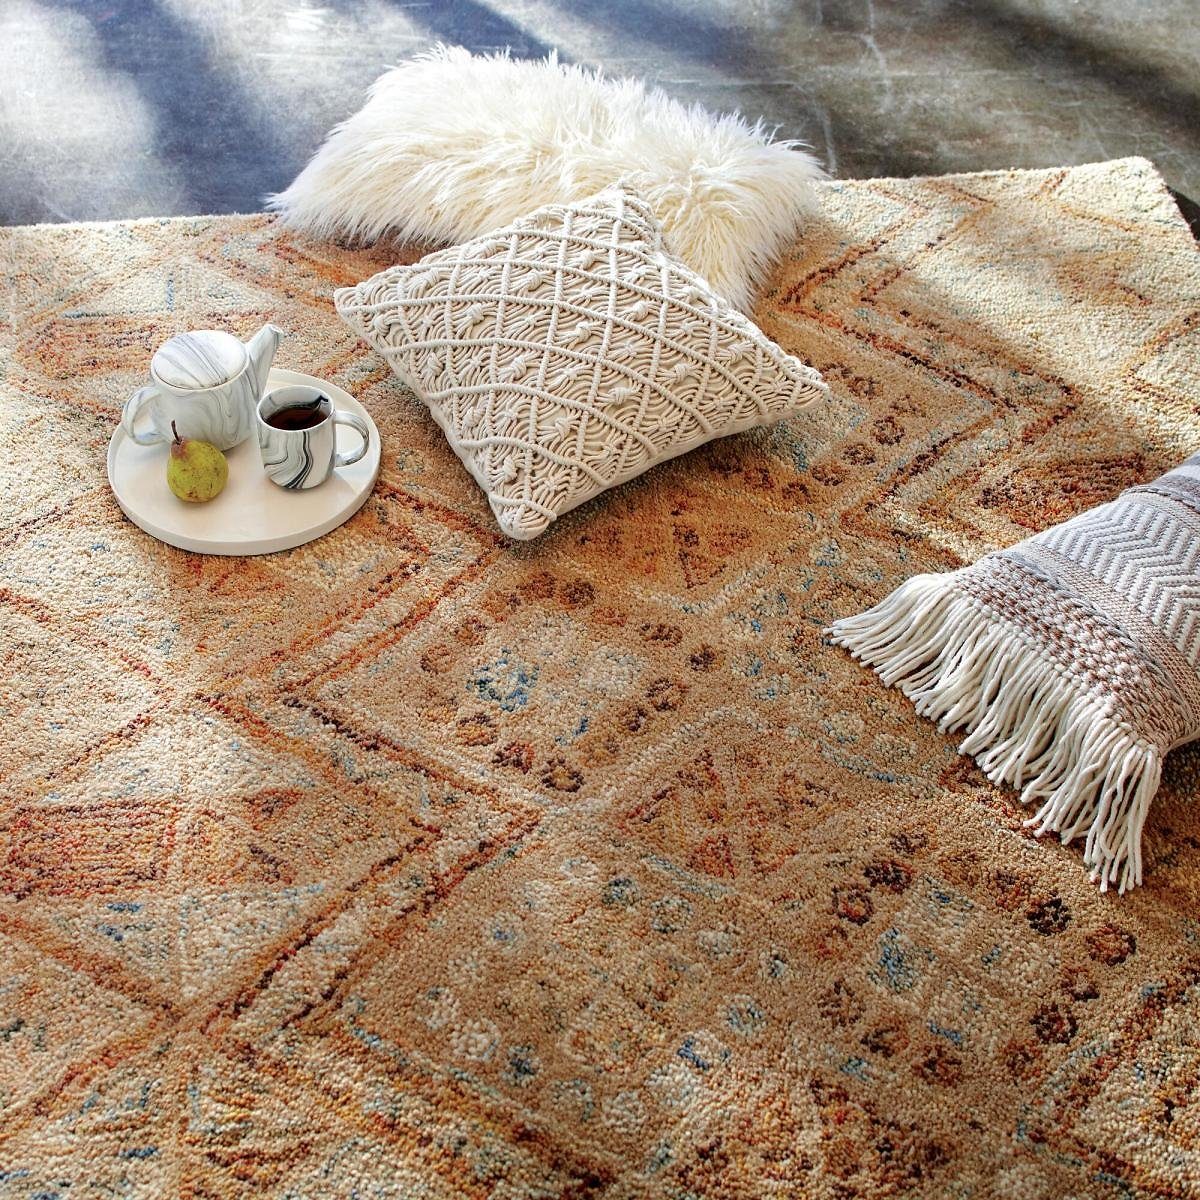 40% Off World Market Rugs Sale + 10% Off Curb-Side Pick Up +More!